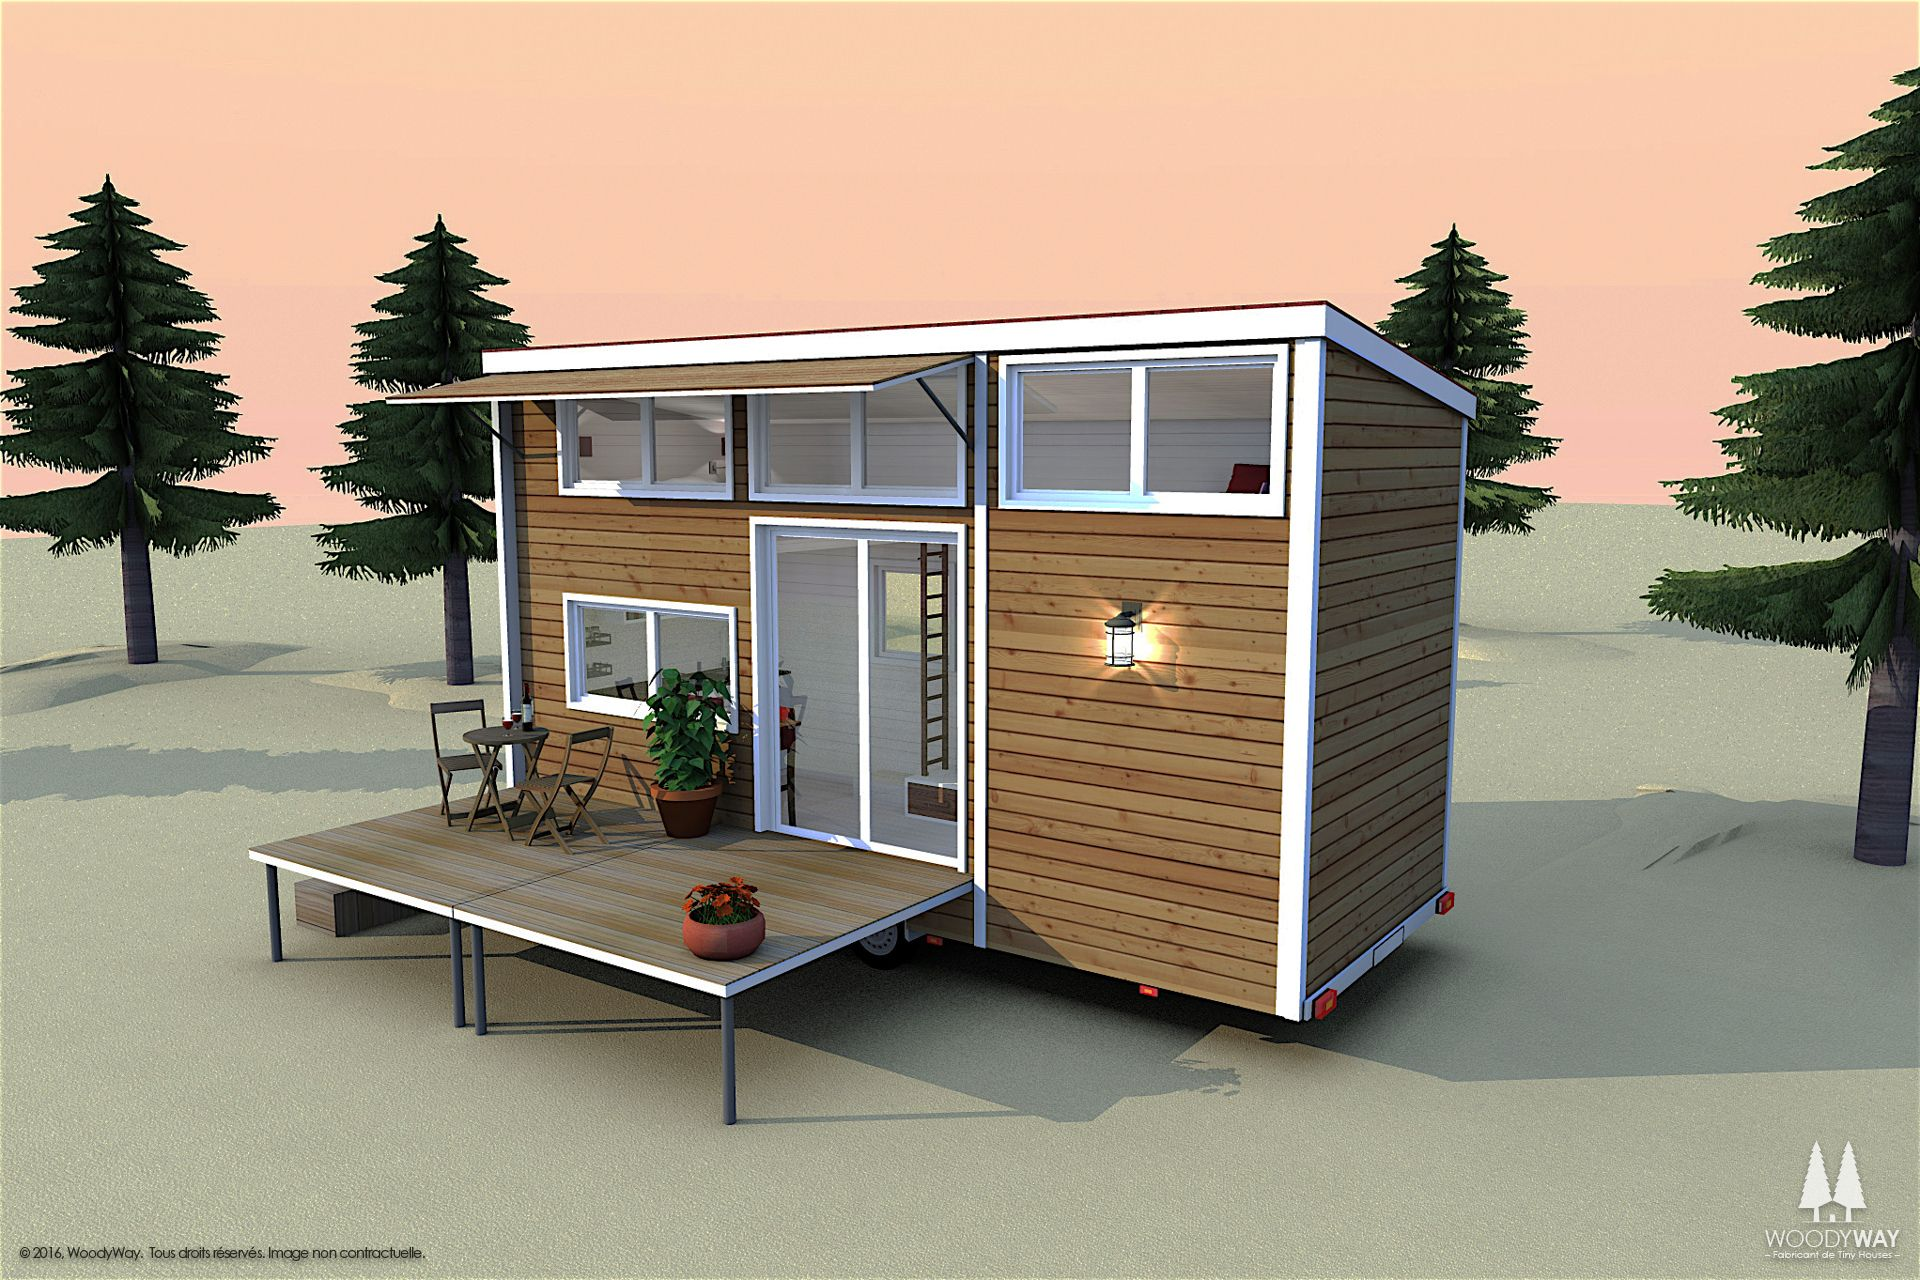 Small House Plans Tiny House Plans Home Design Plans Small House